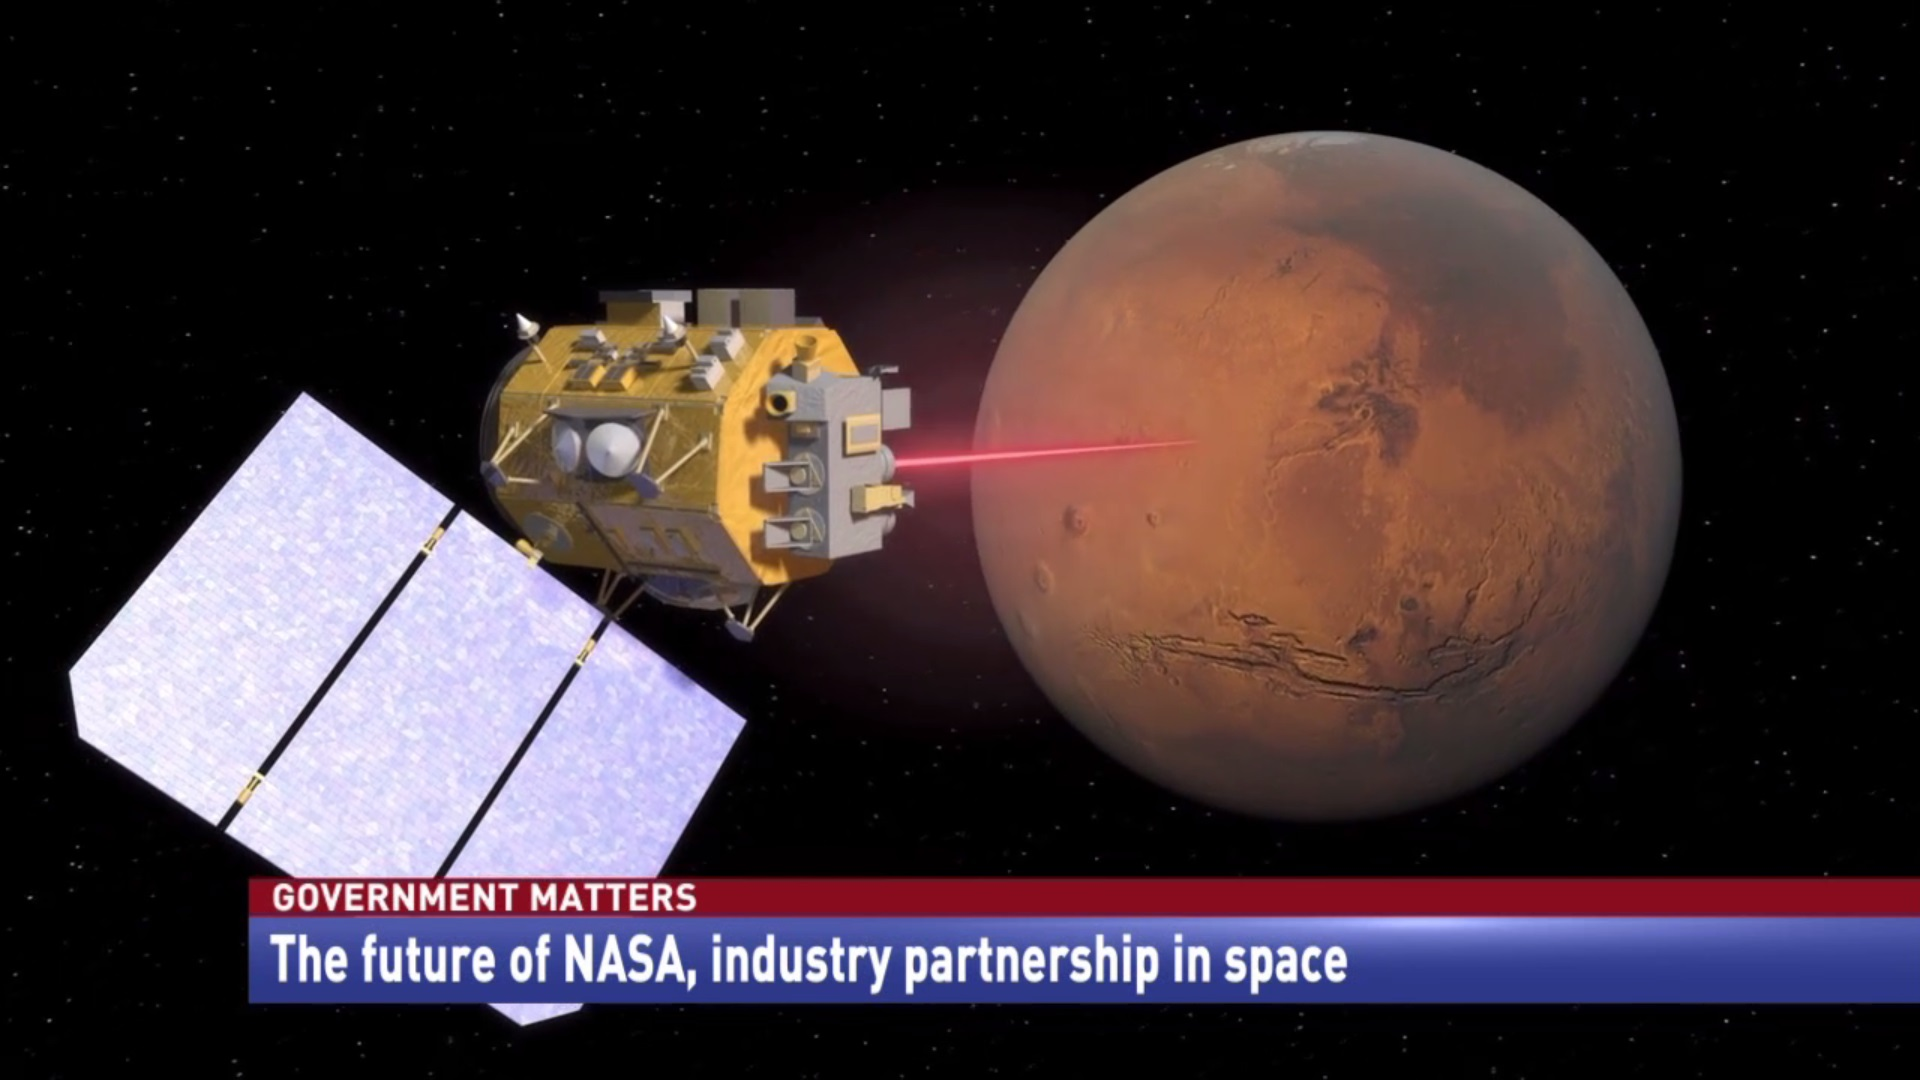 The future of NASA, industry partnership in space